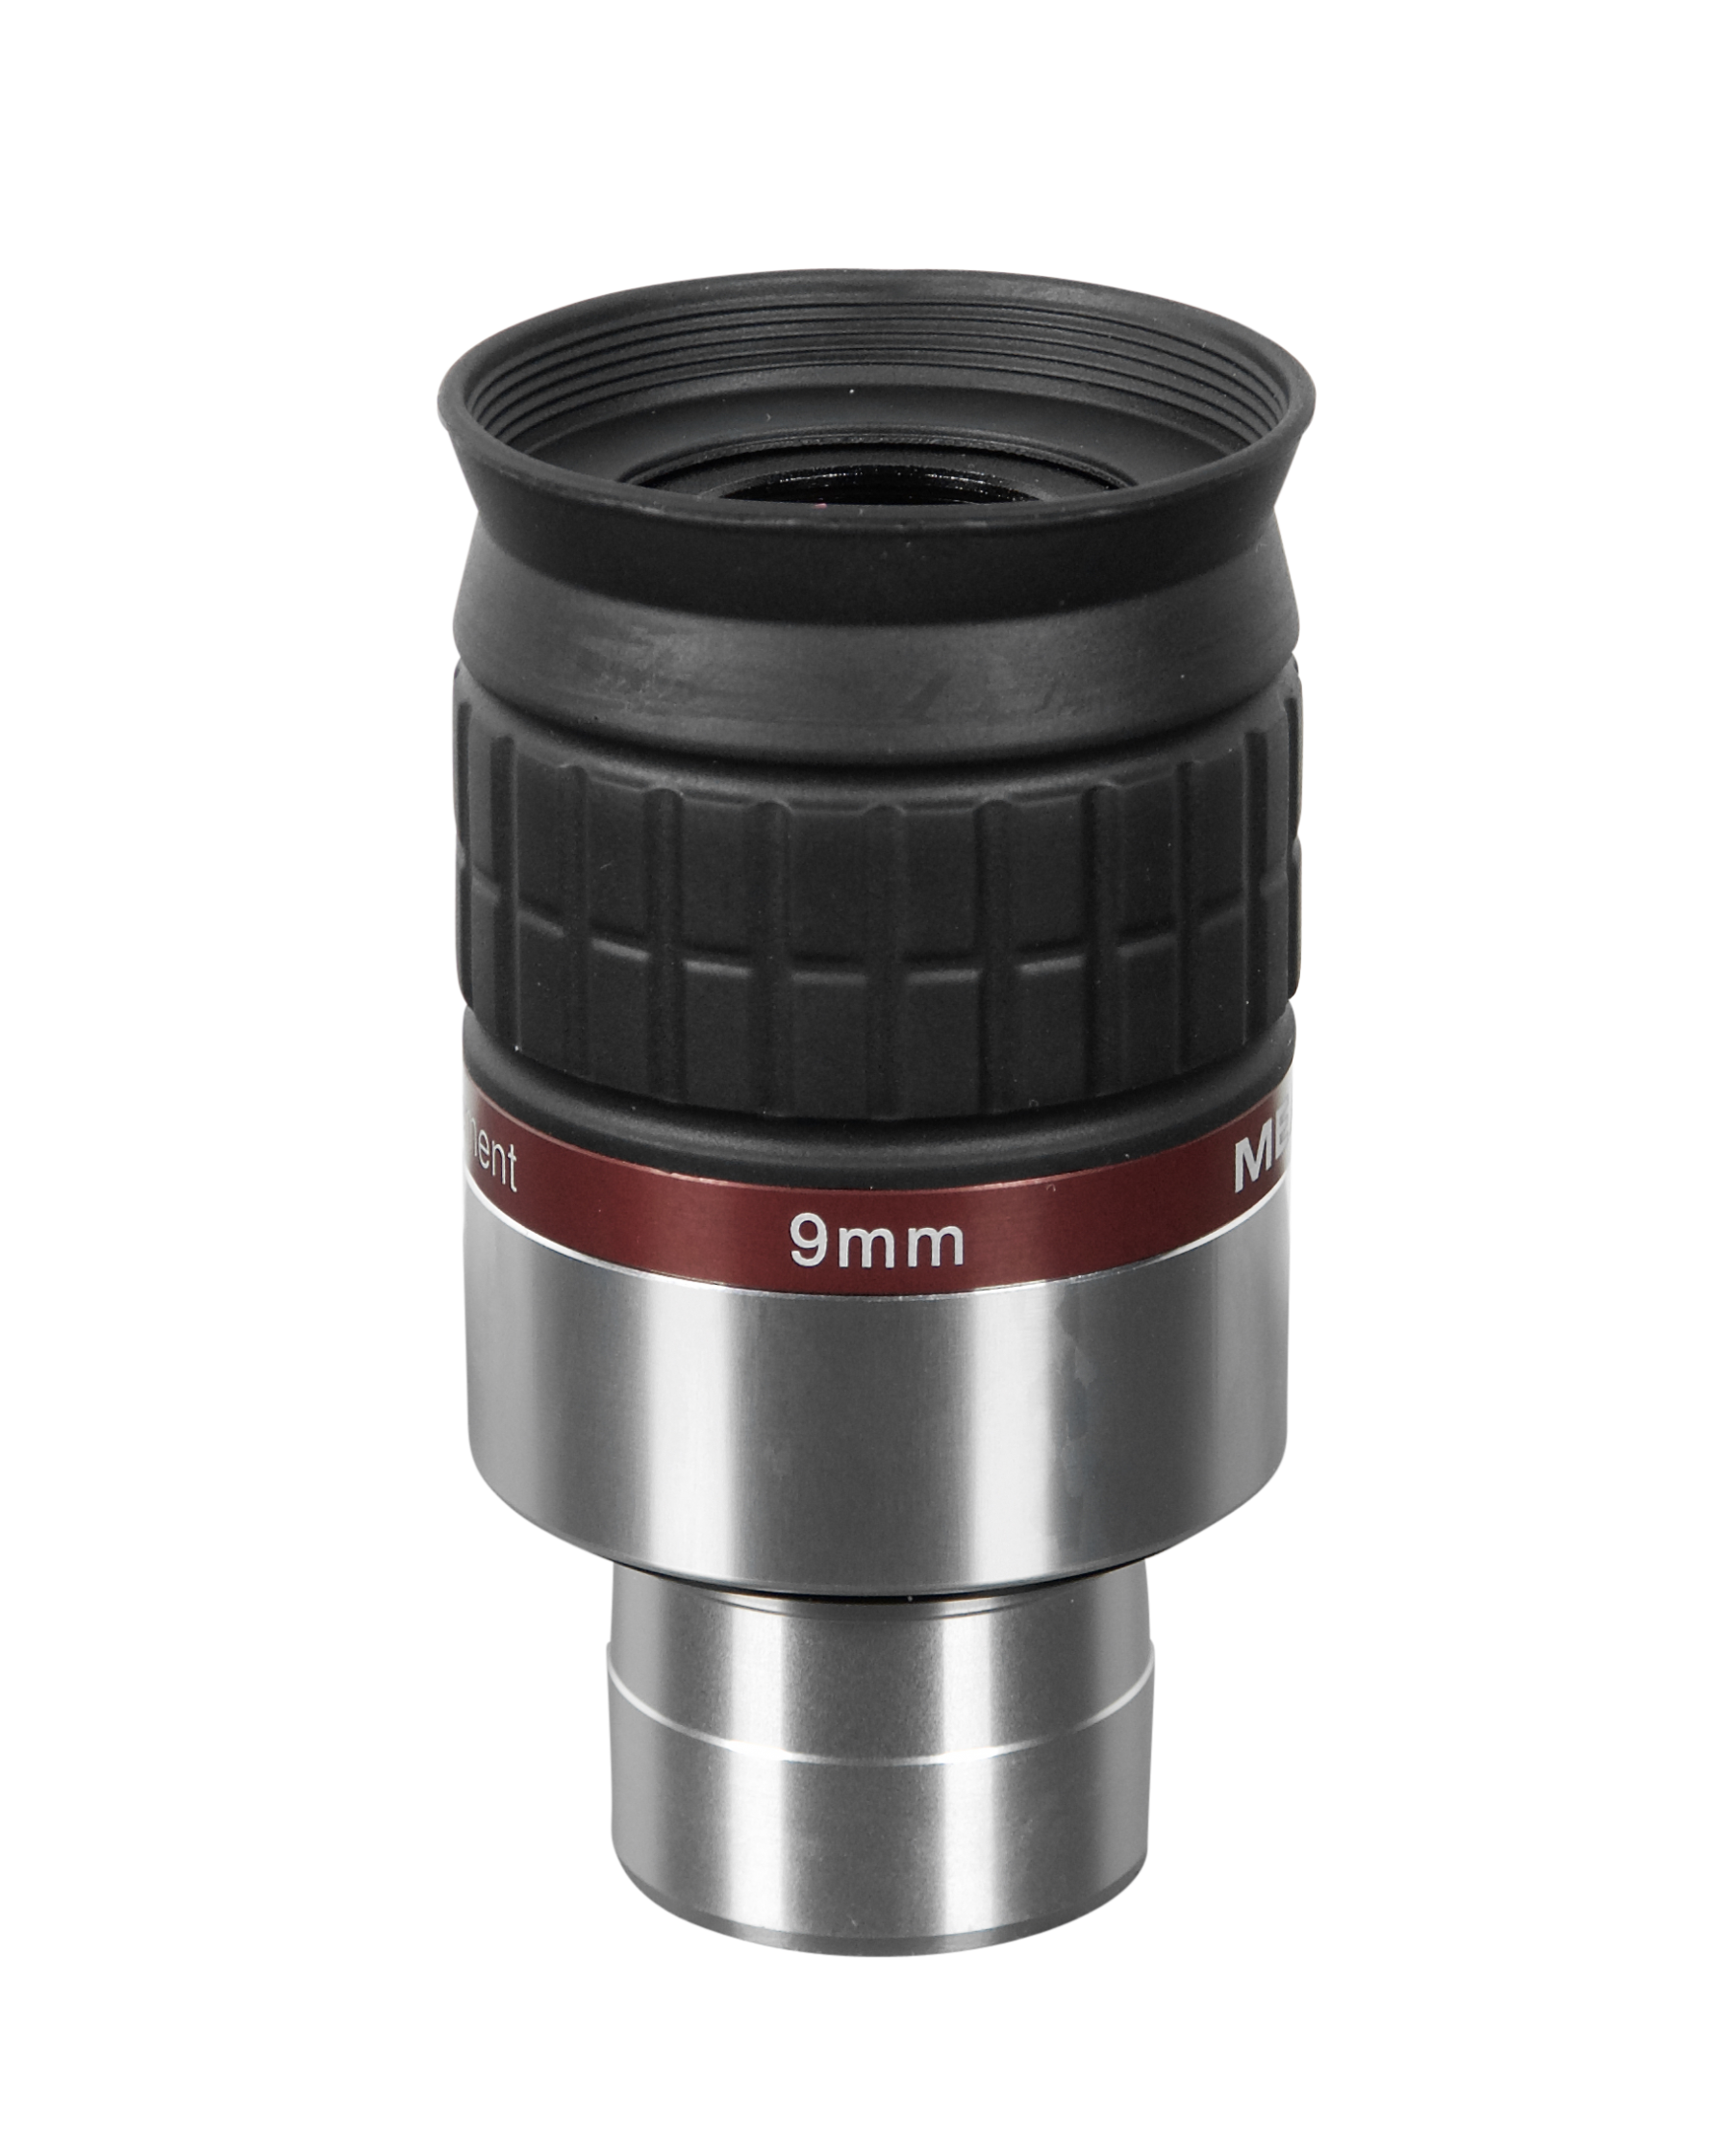 MEADE SERIES 5000 HD-60 9MM 6-ELEMENT EYEPIECE (1.25